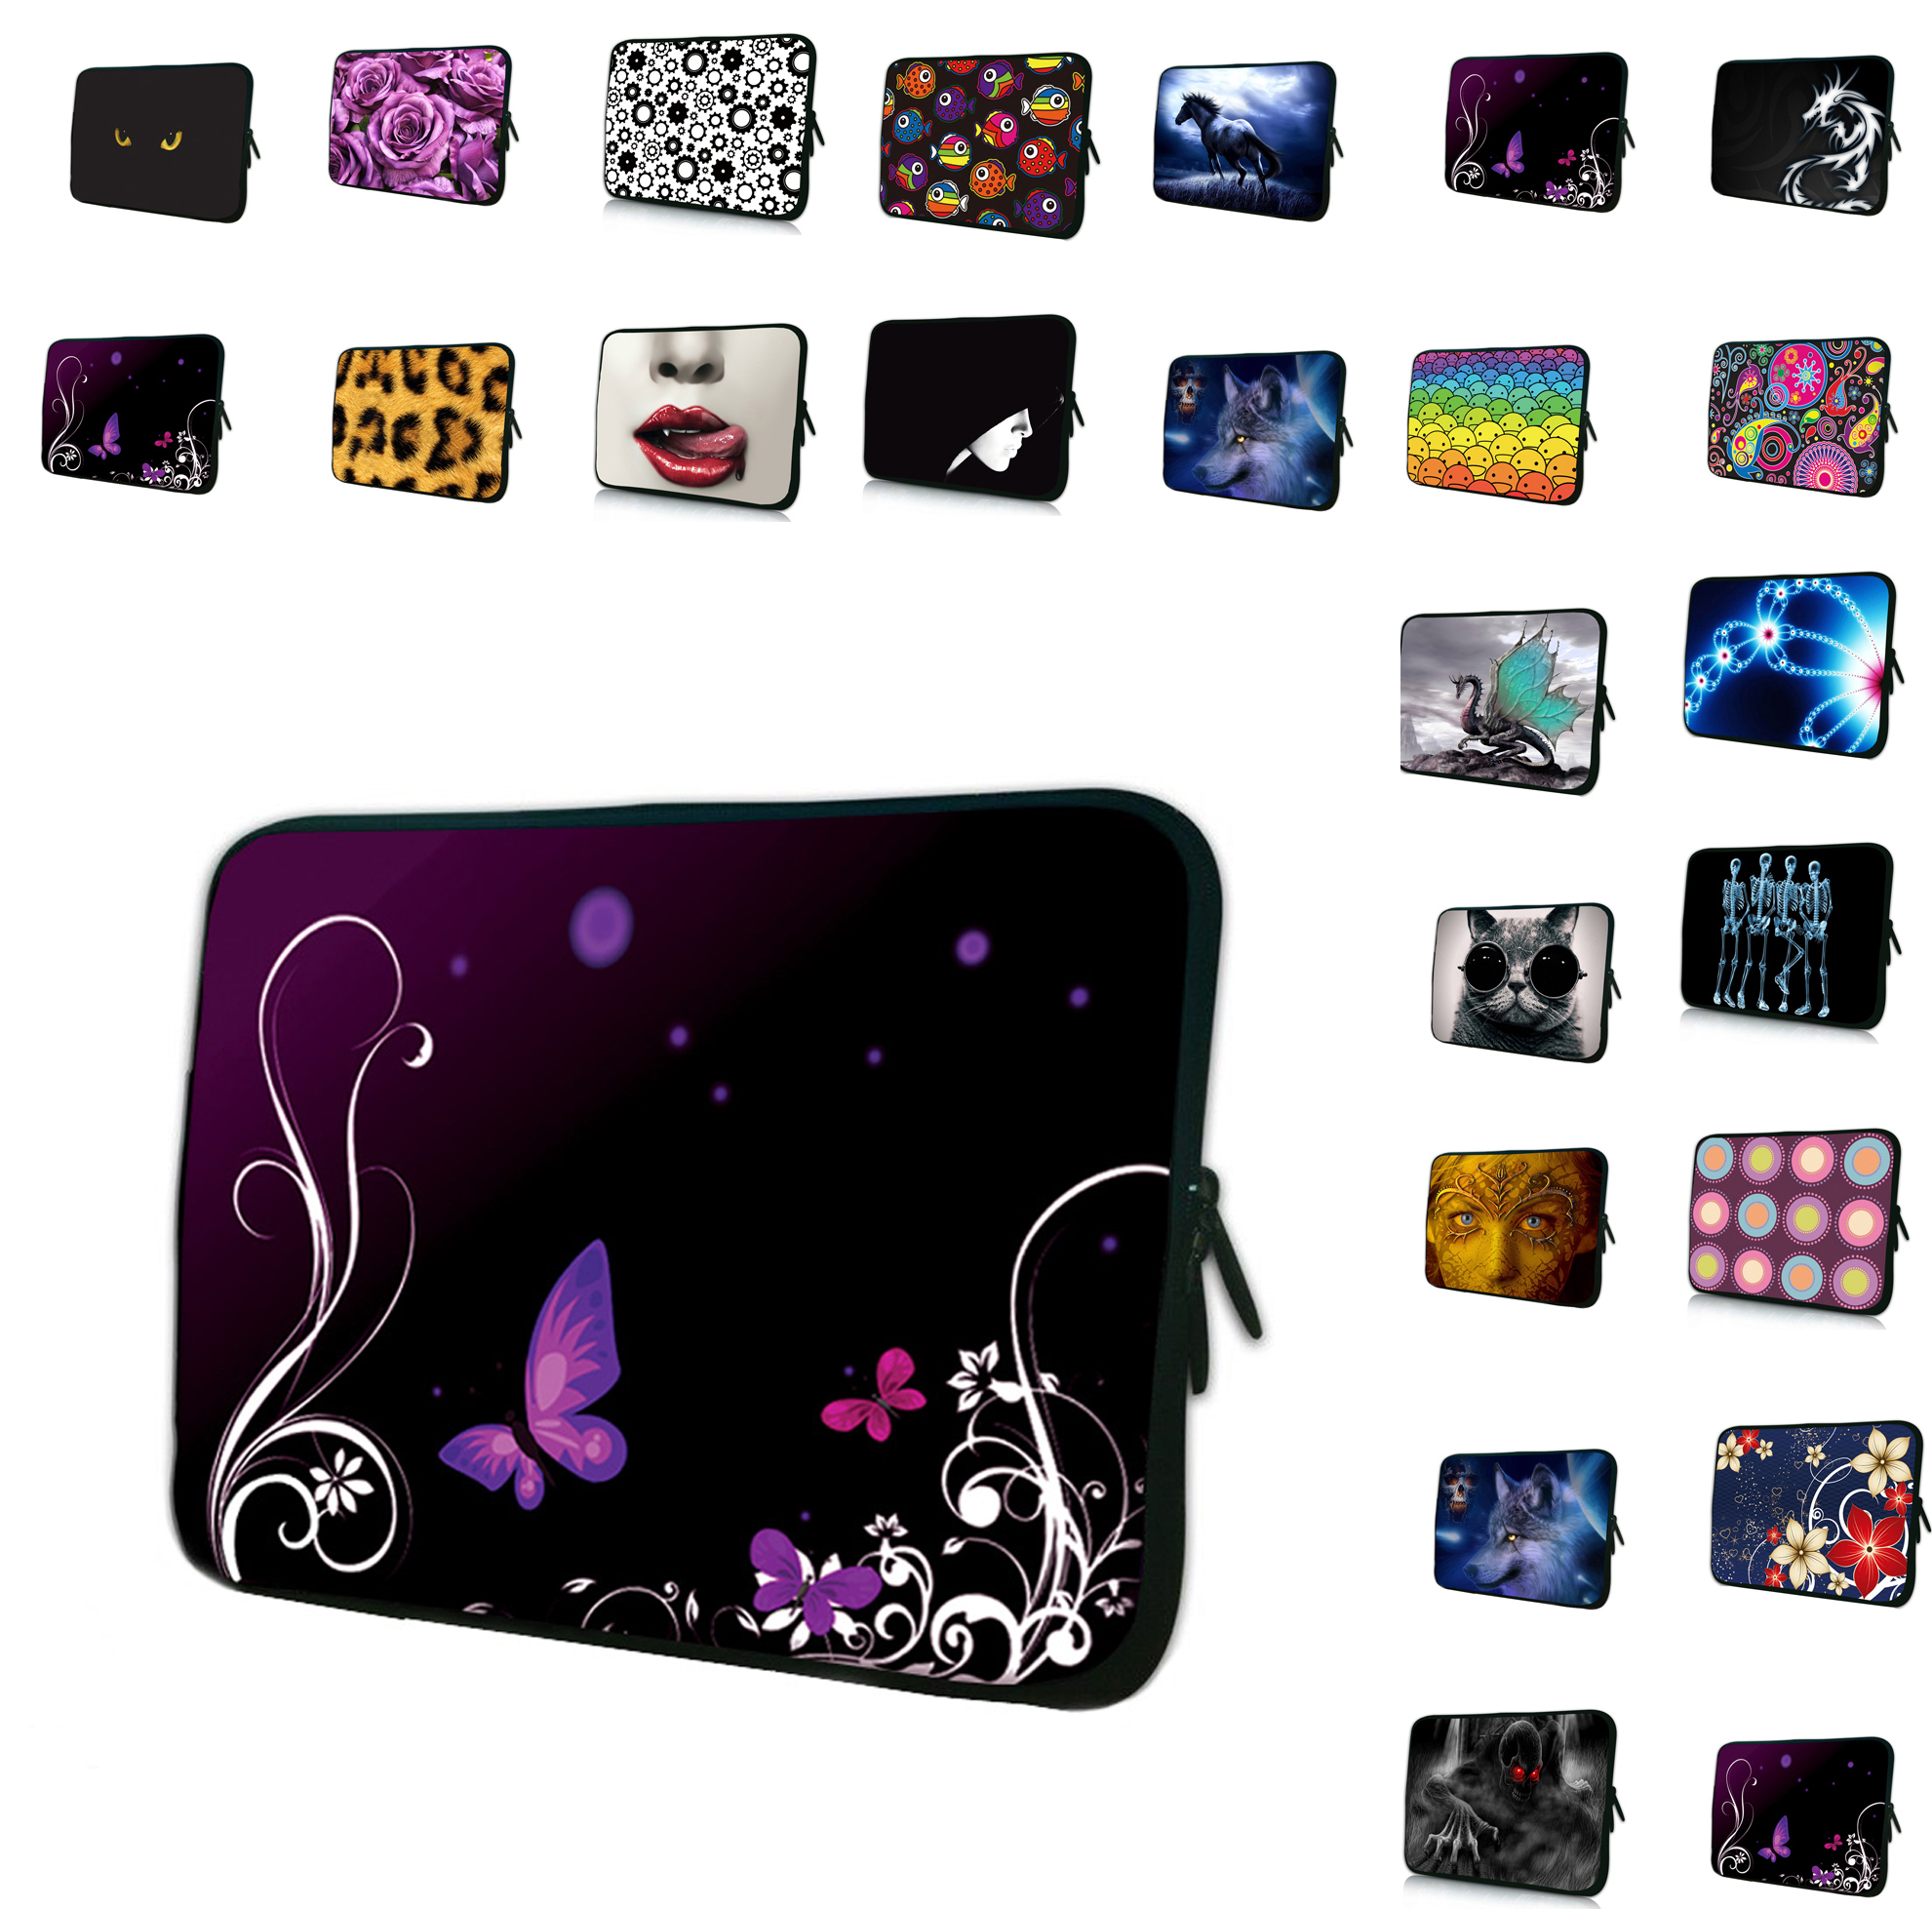 Given the special gift of beauty 15 15.3 15.4 15.5 15.6 inch laptop bag Comfortable Neoprene Material Sleeve Cases for Dell Acer(China (Mainland))